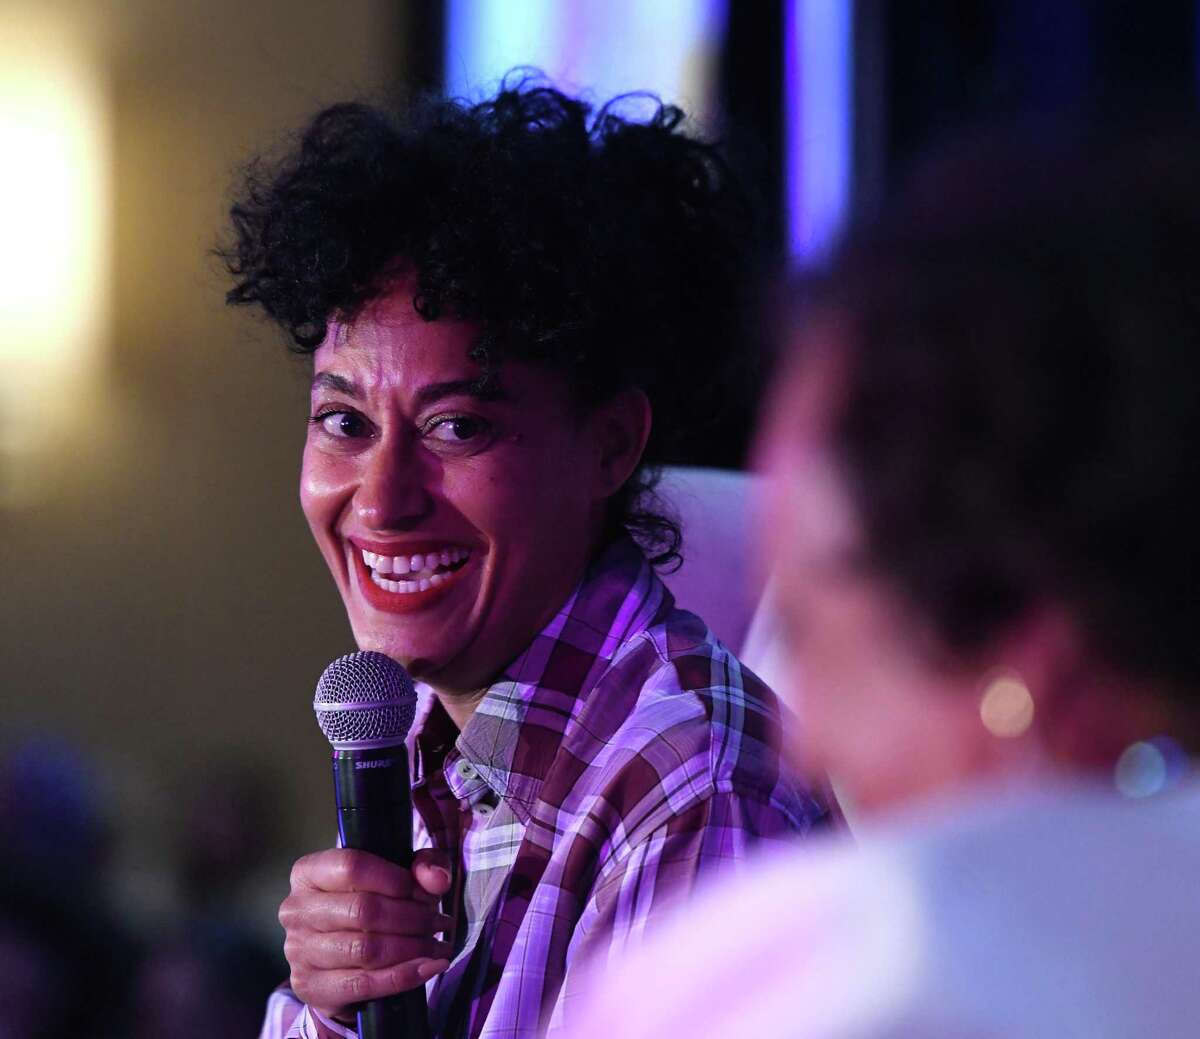 Tracee Ellis Ross delivers the keynote conversation during Fairfield County's Community Foundation Fund for Women & Girls annual luncheon at the Hyatt Regency in Old Greenwich Thursday.